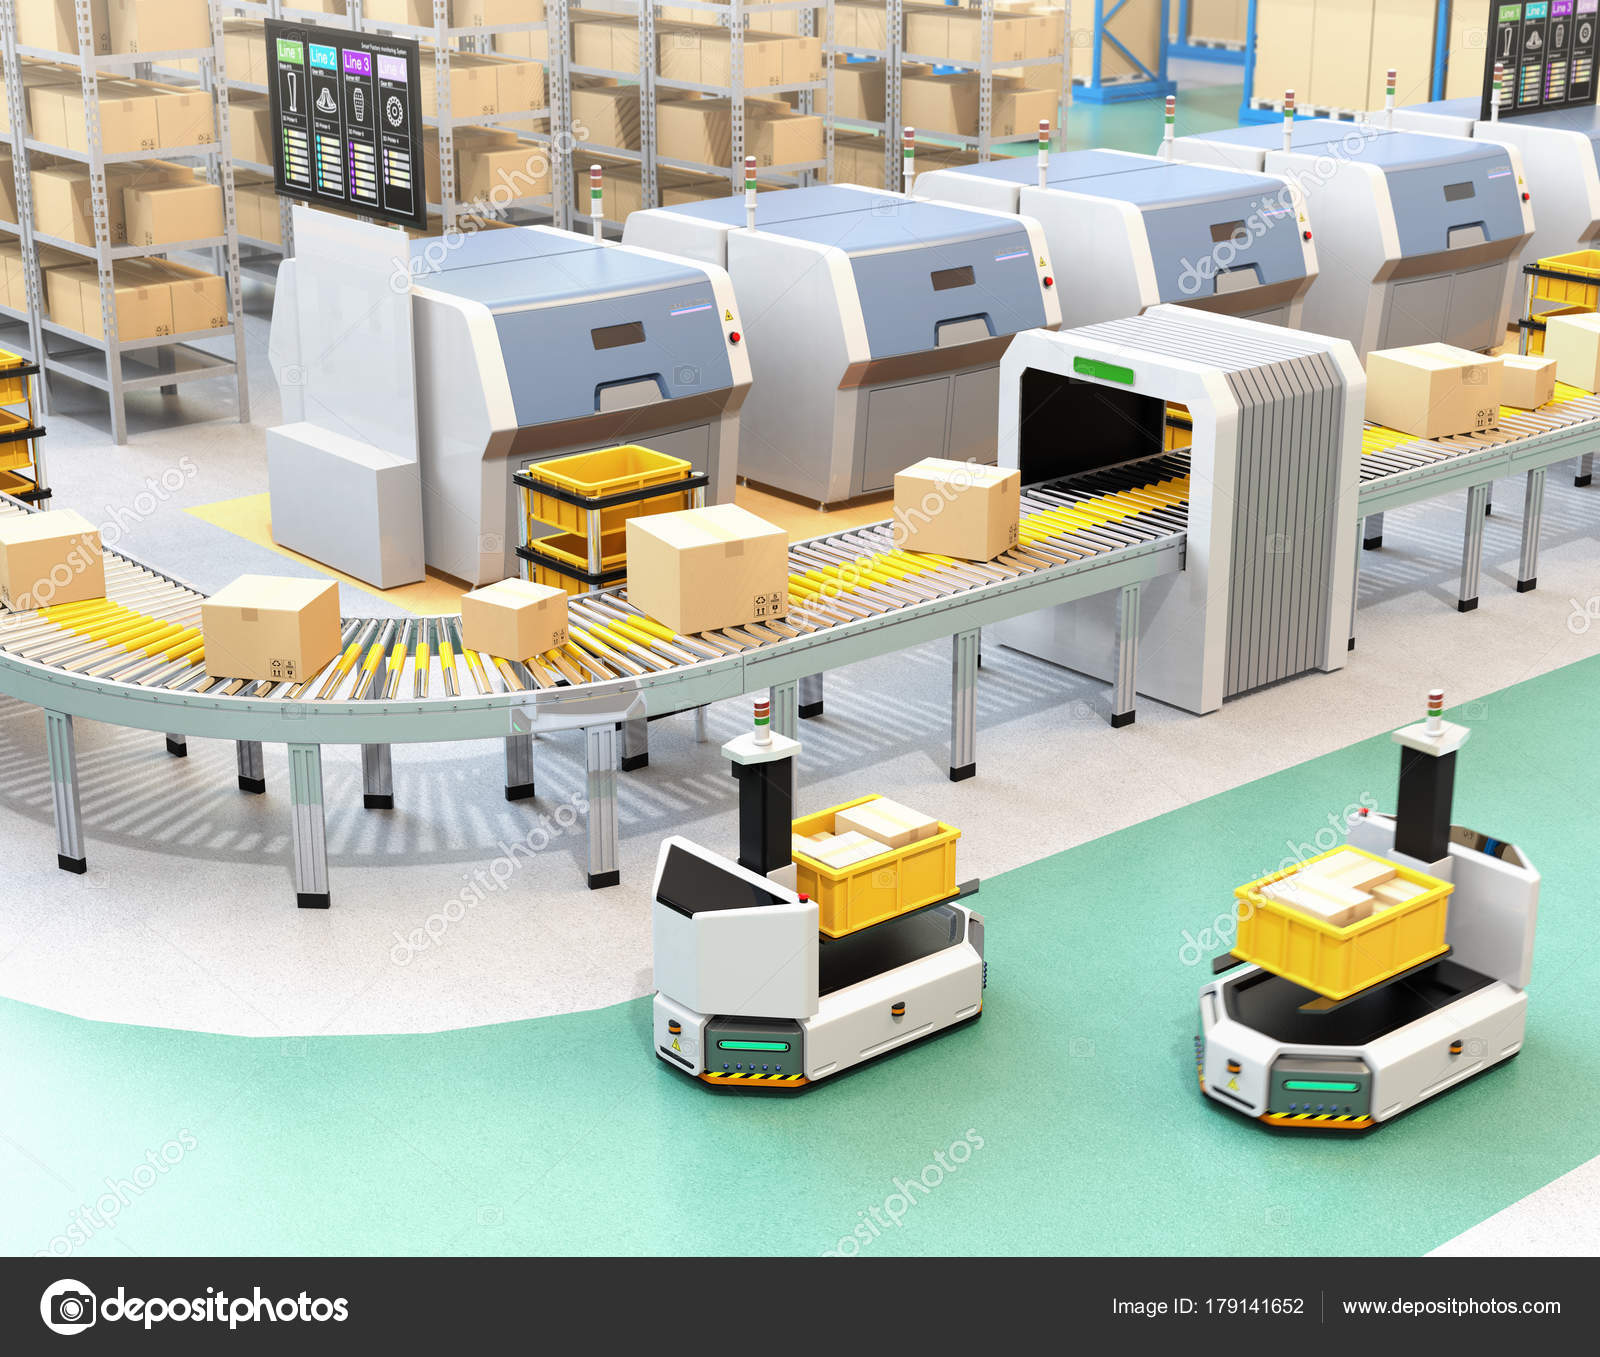 Self Driving Agv Automatic Guided Vehicle Forklift Carrying